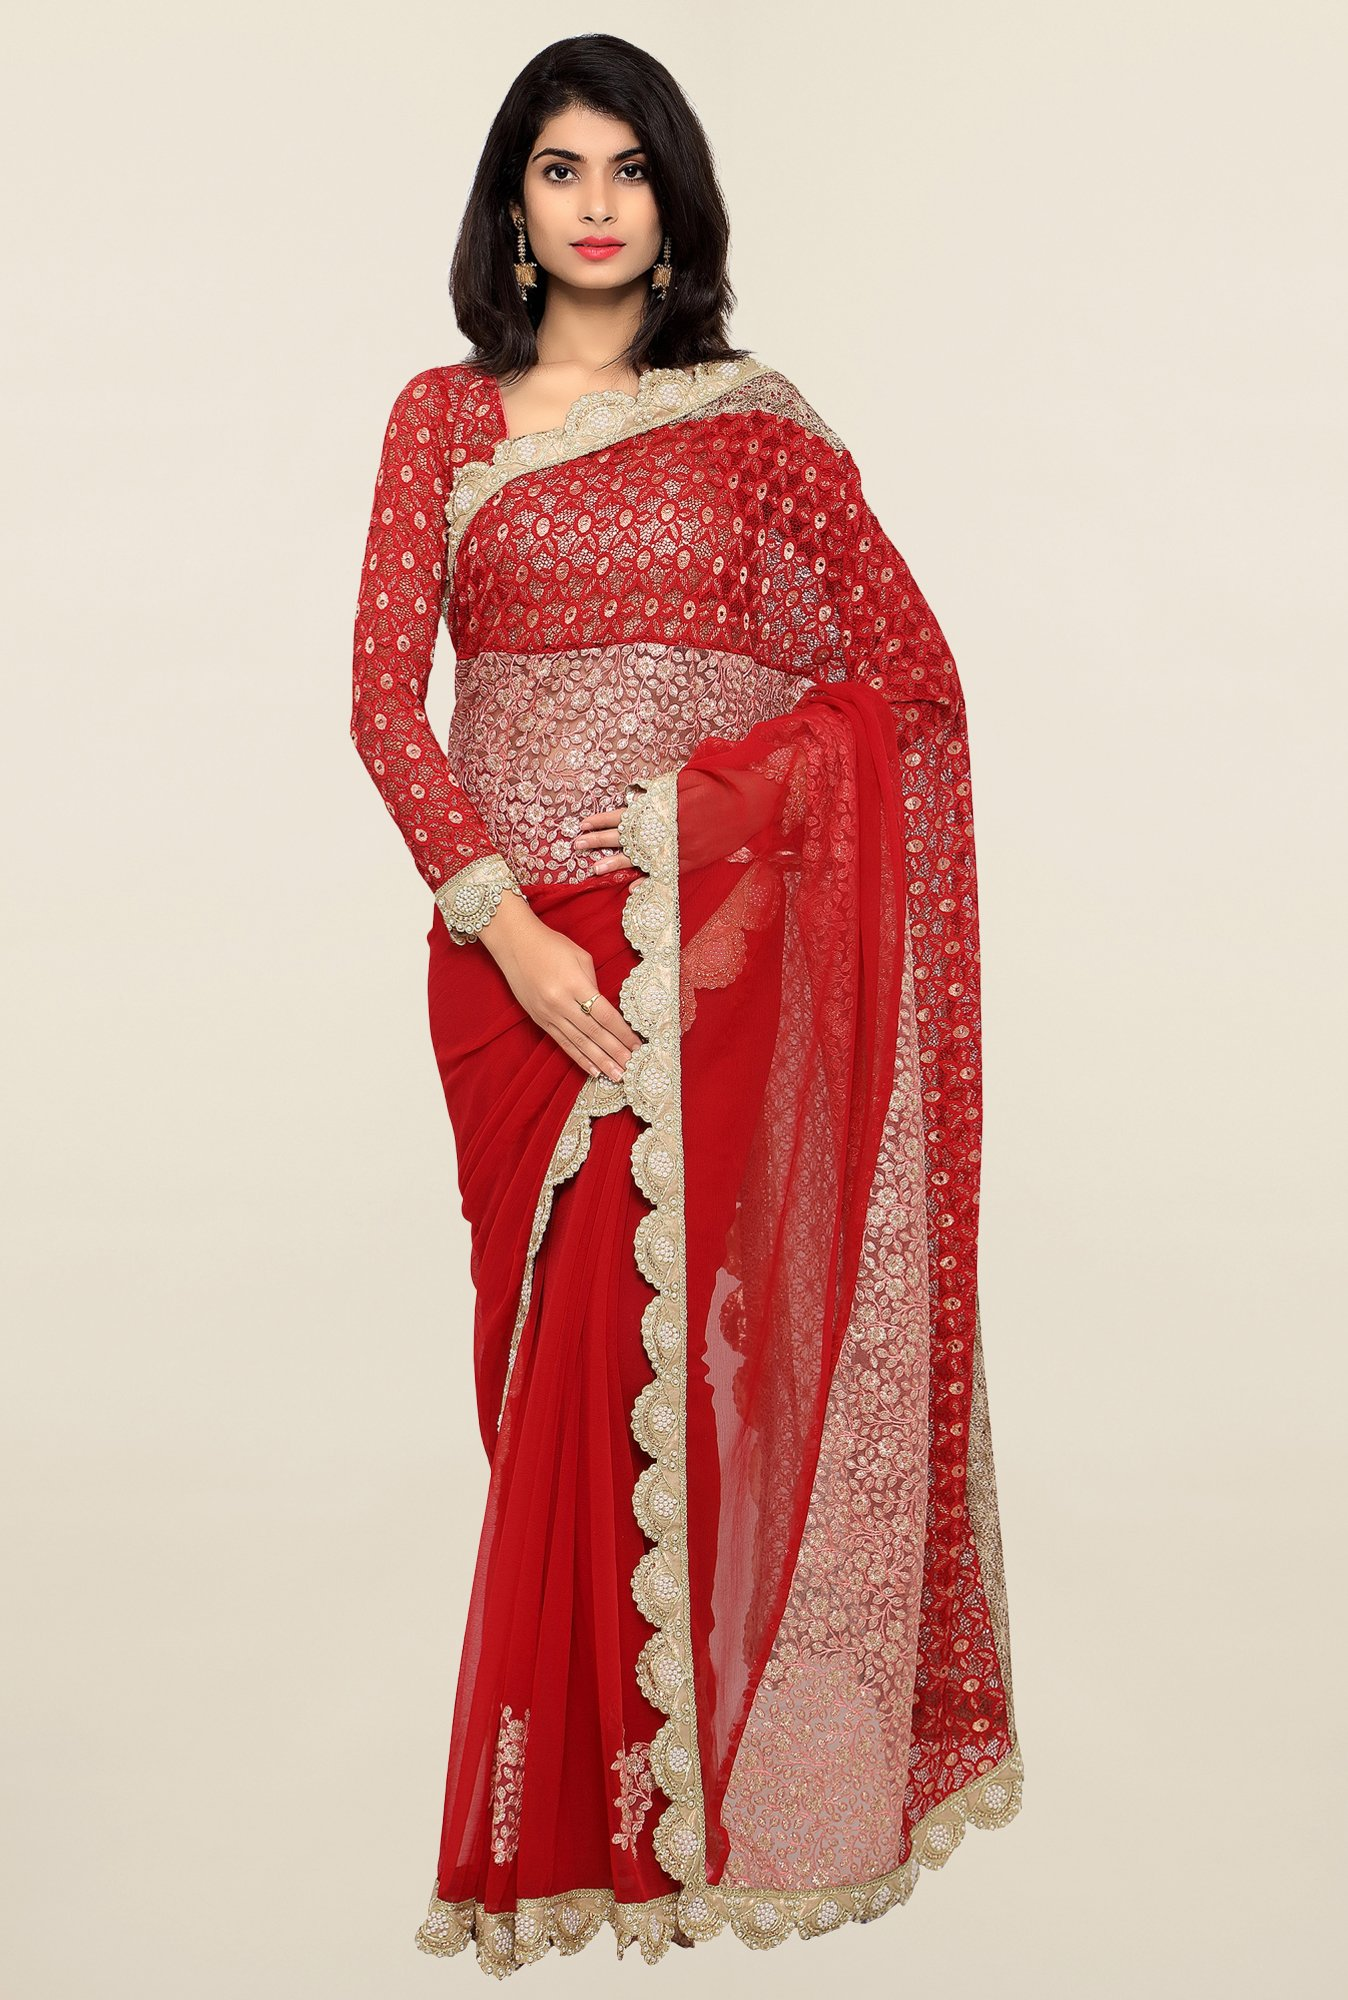 Triveni Maroon Embroidered Chiffon Saree